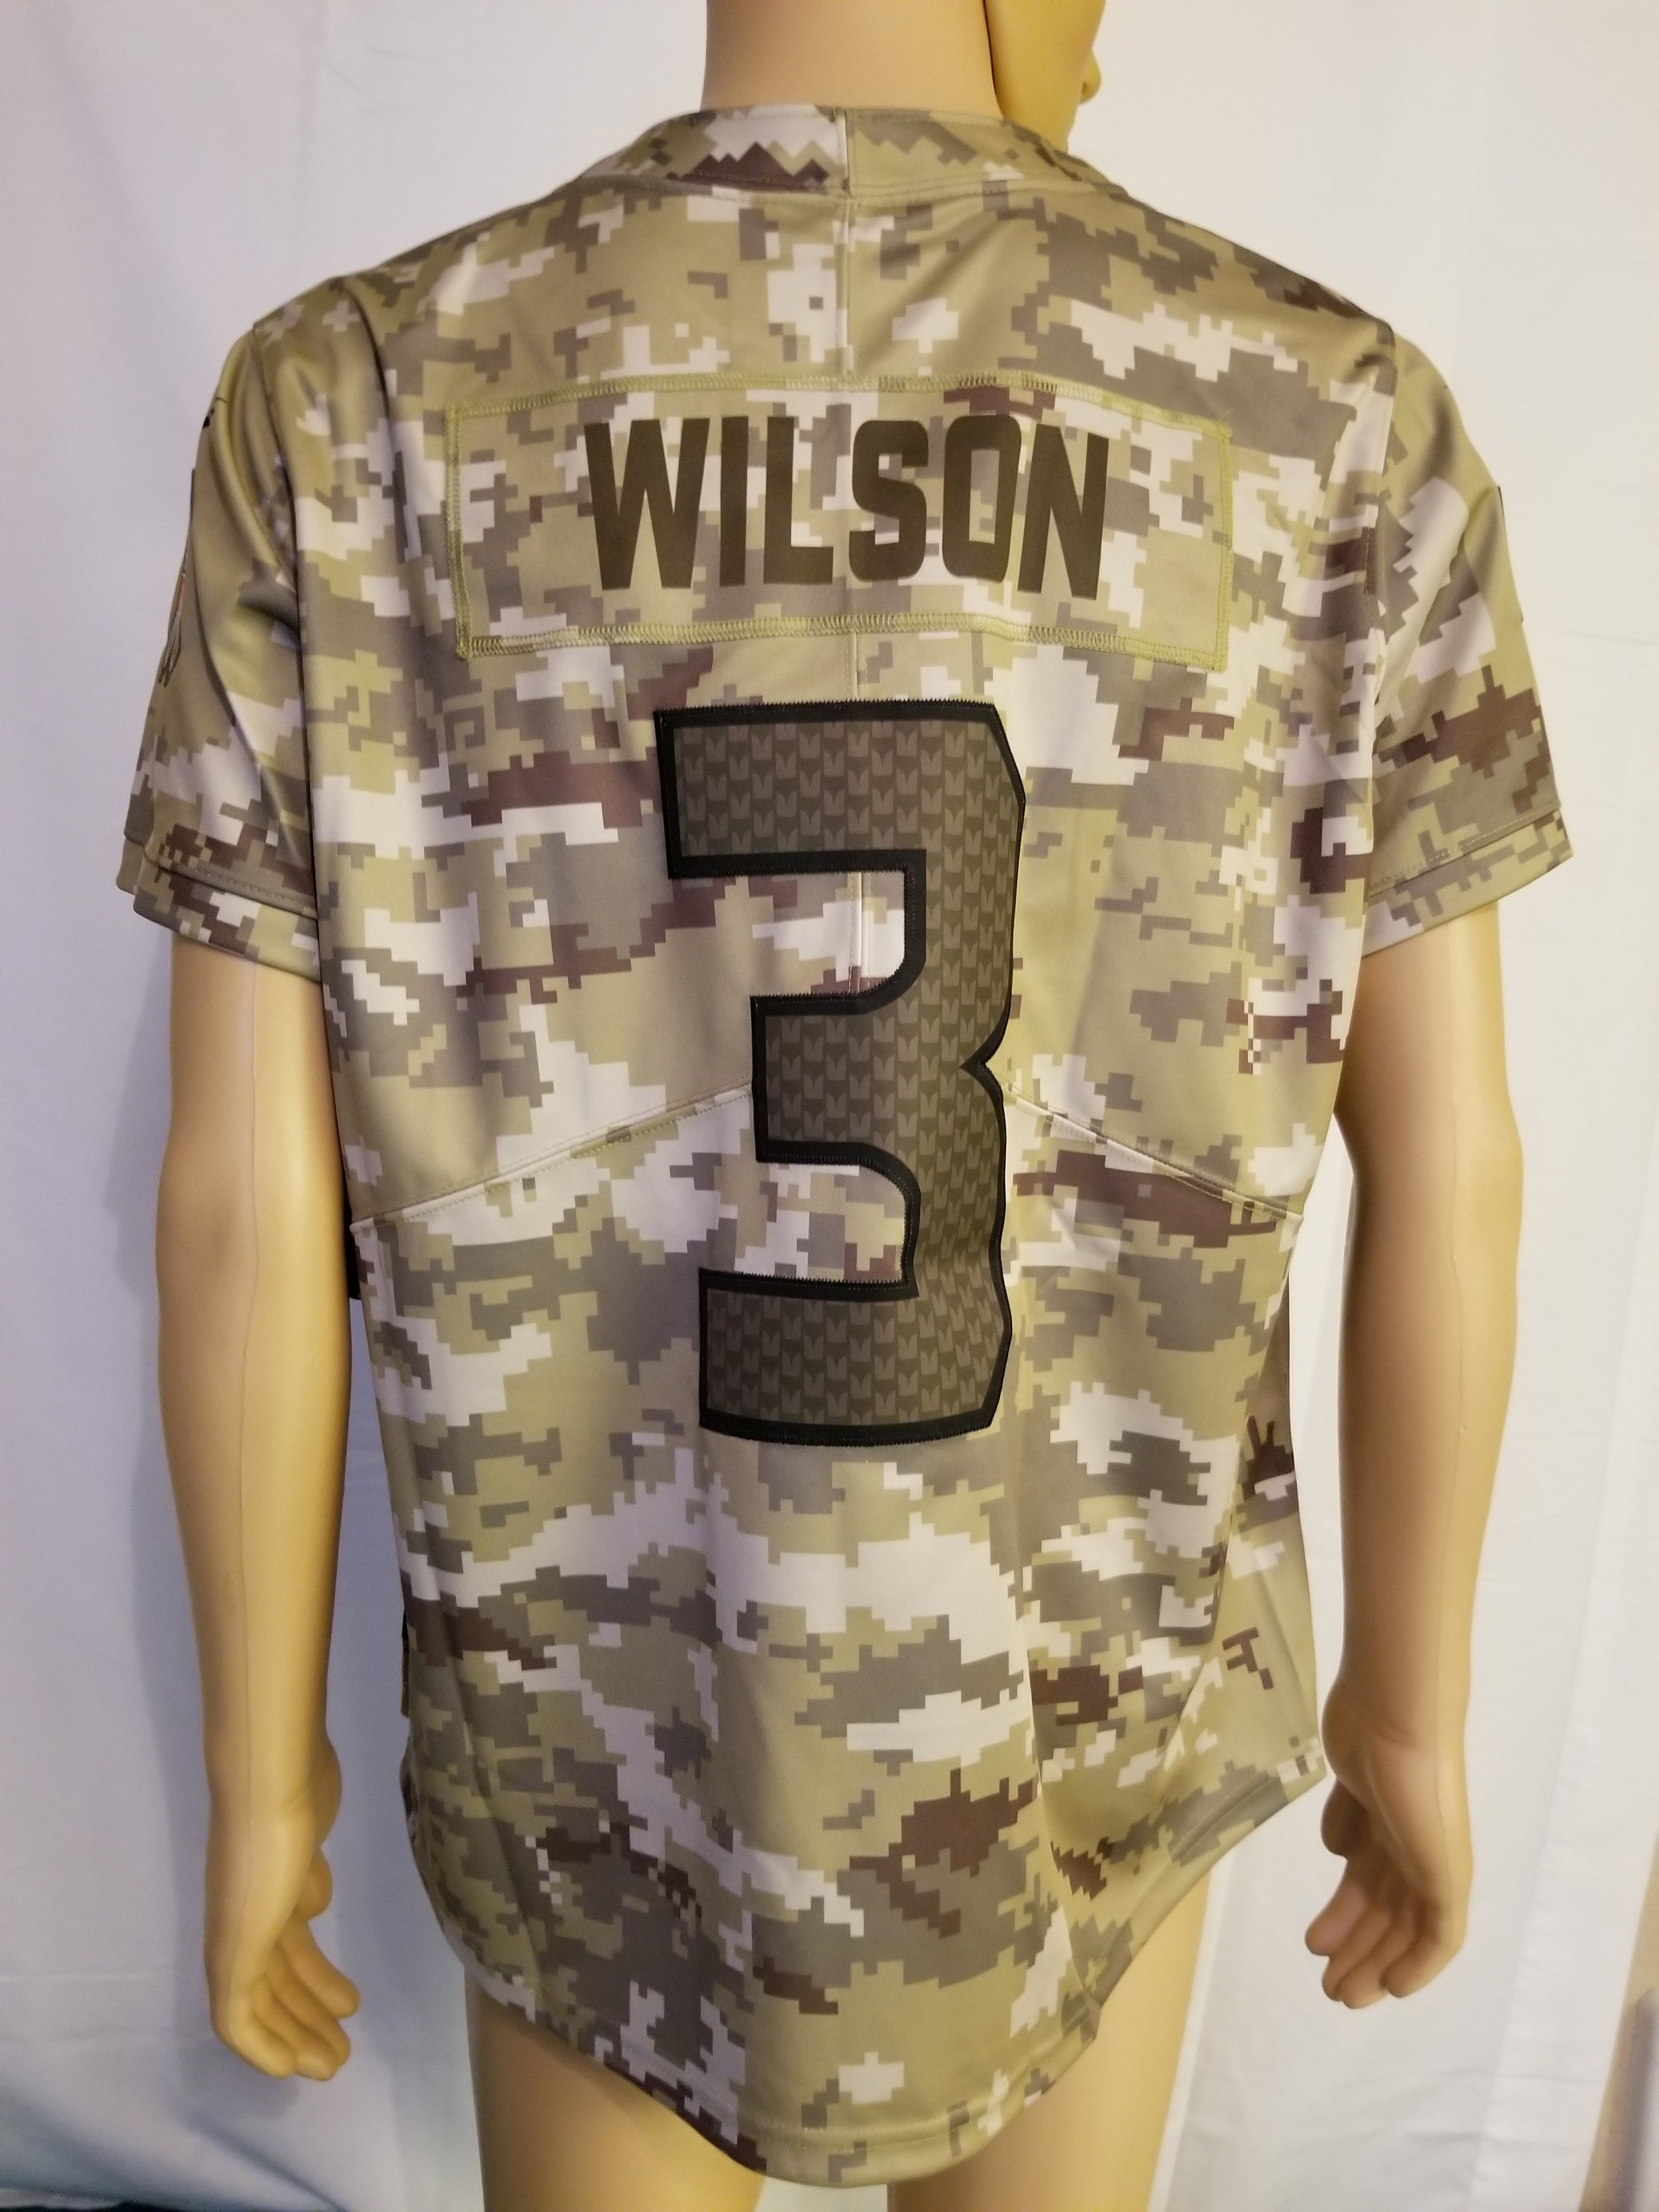 Nwt rare Russell Wilson salute to service Camo jersey Seattle Seahawks womens size 2xl — JtsHeroeShop